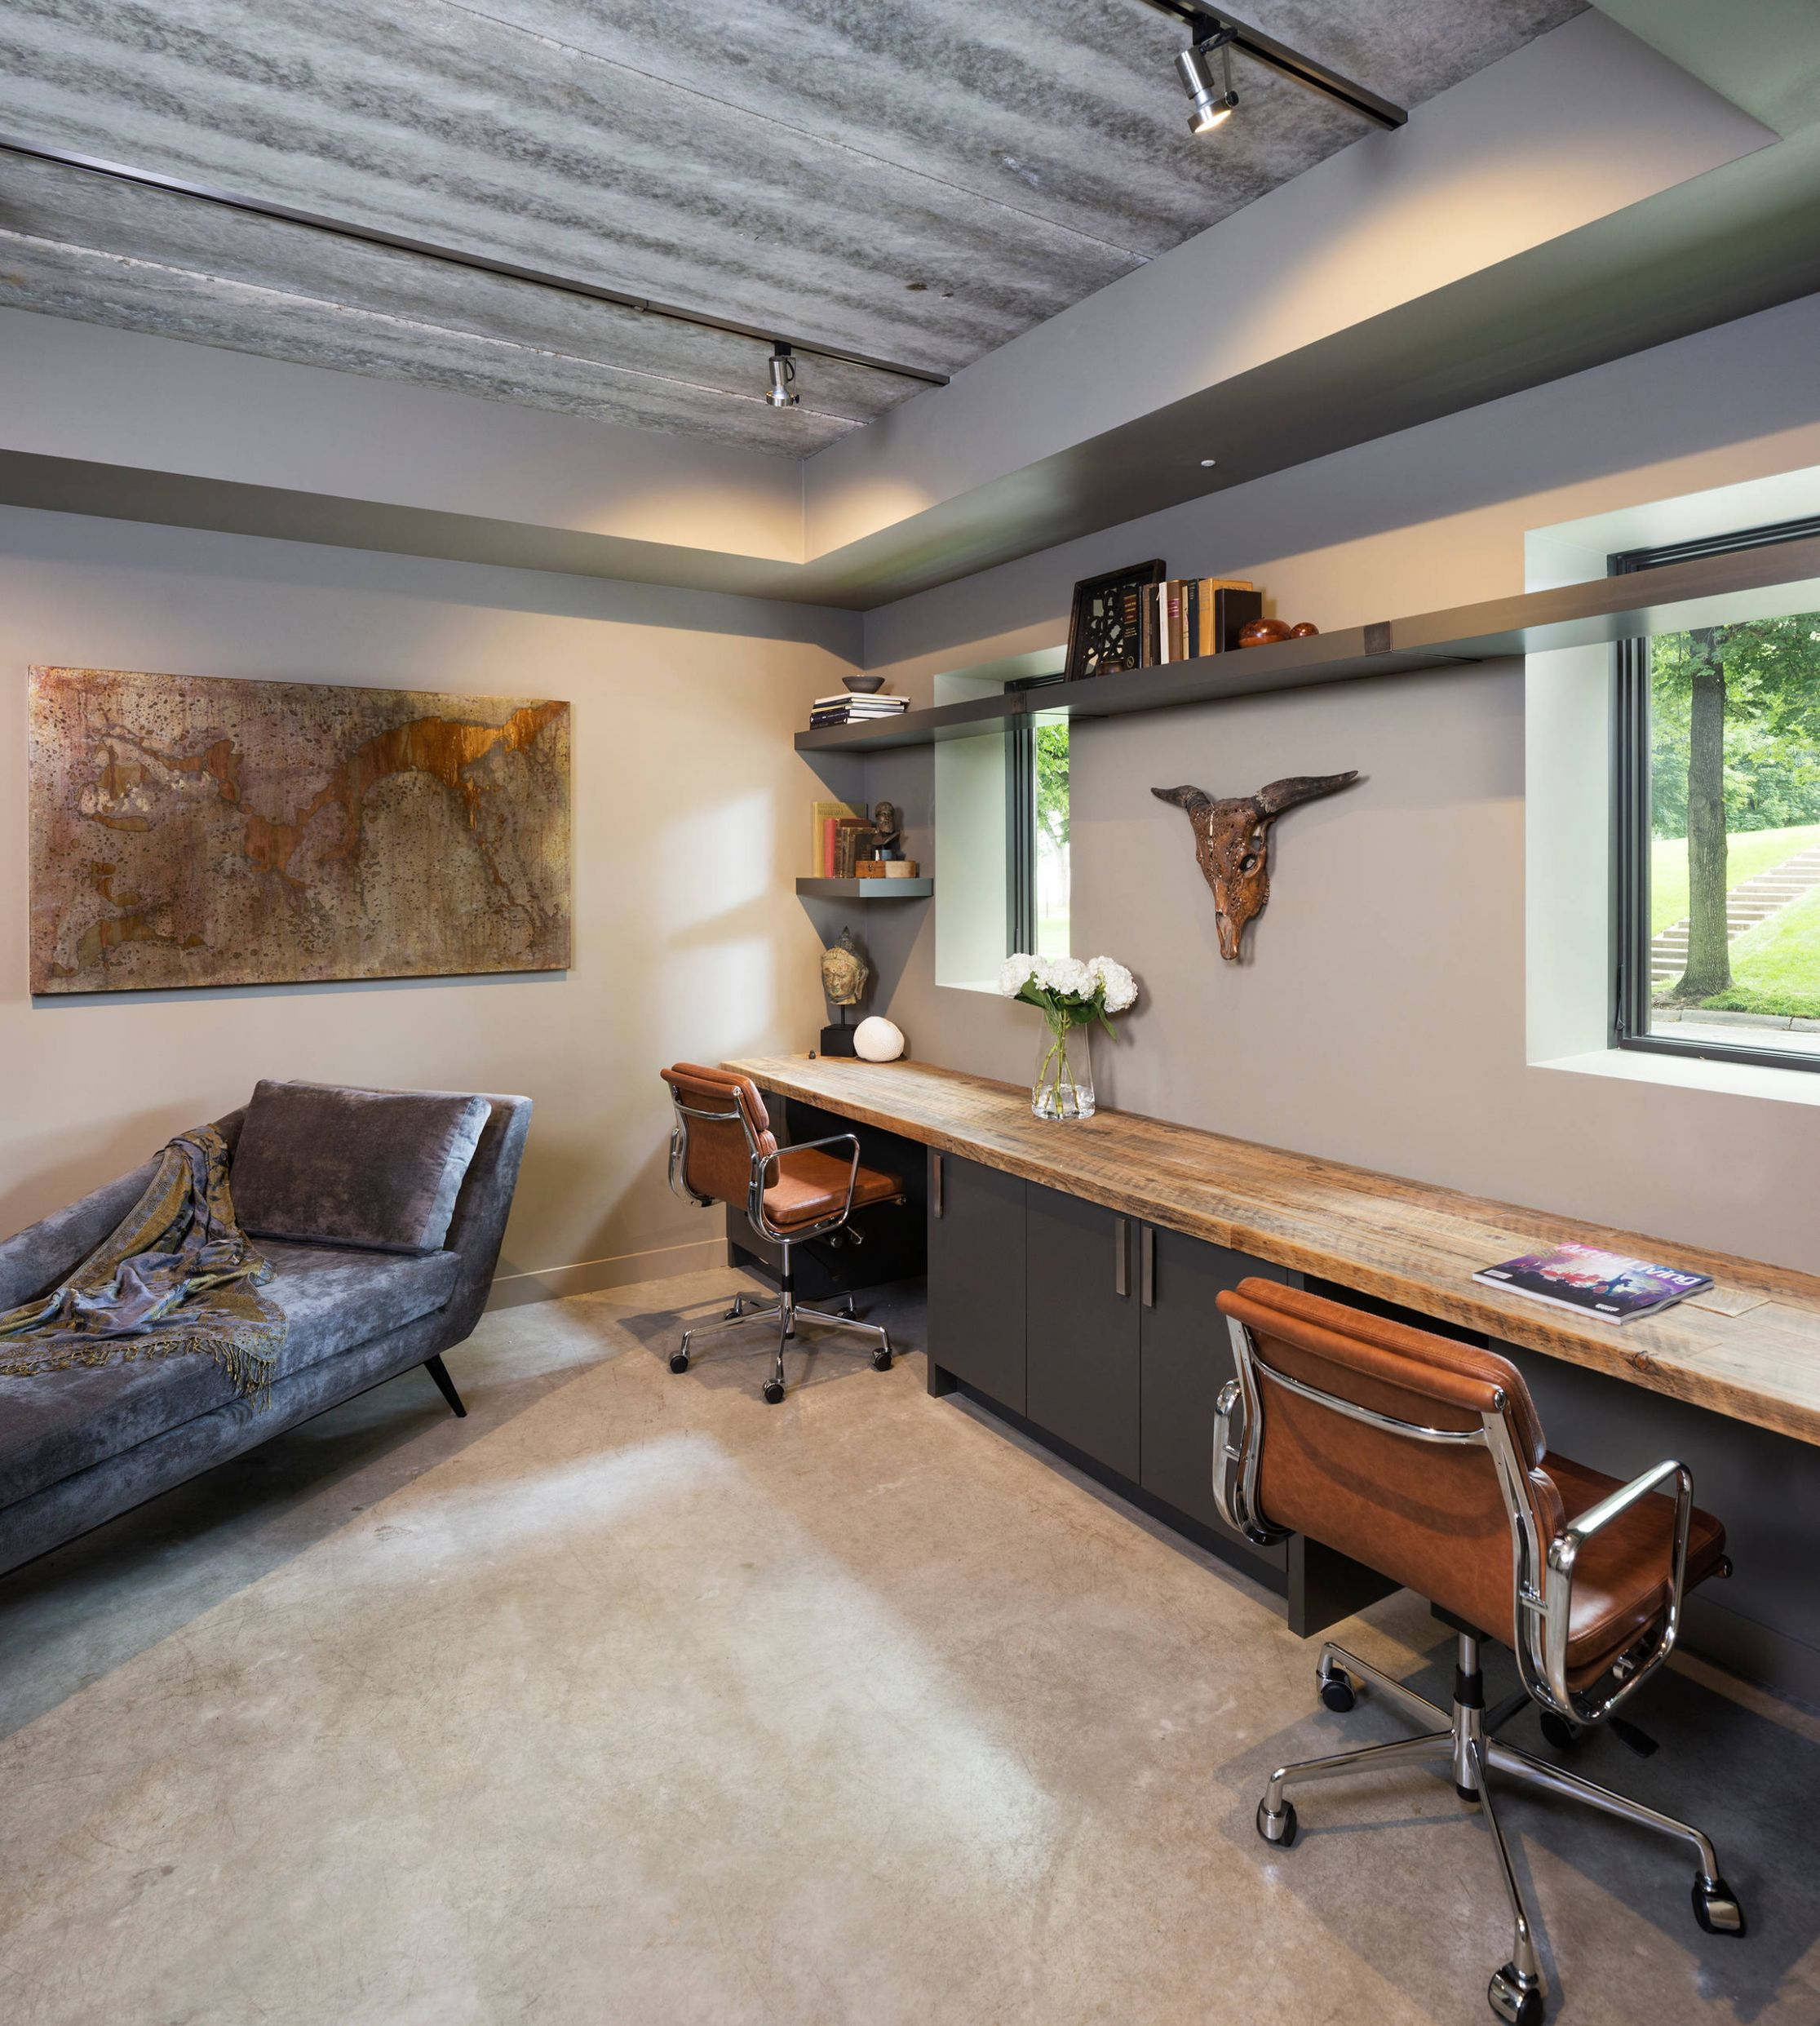 9 Life Changing Small Home Office Remodel Ideas | Houzz